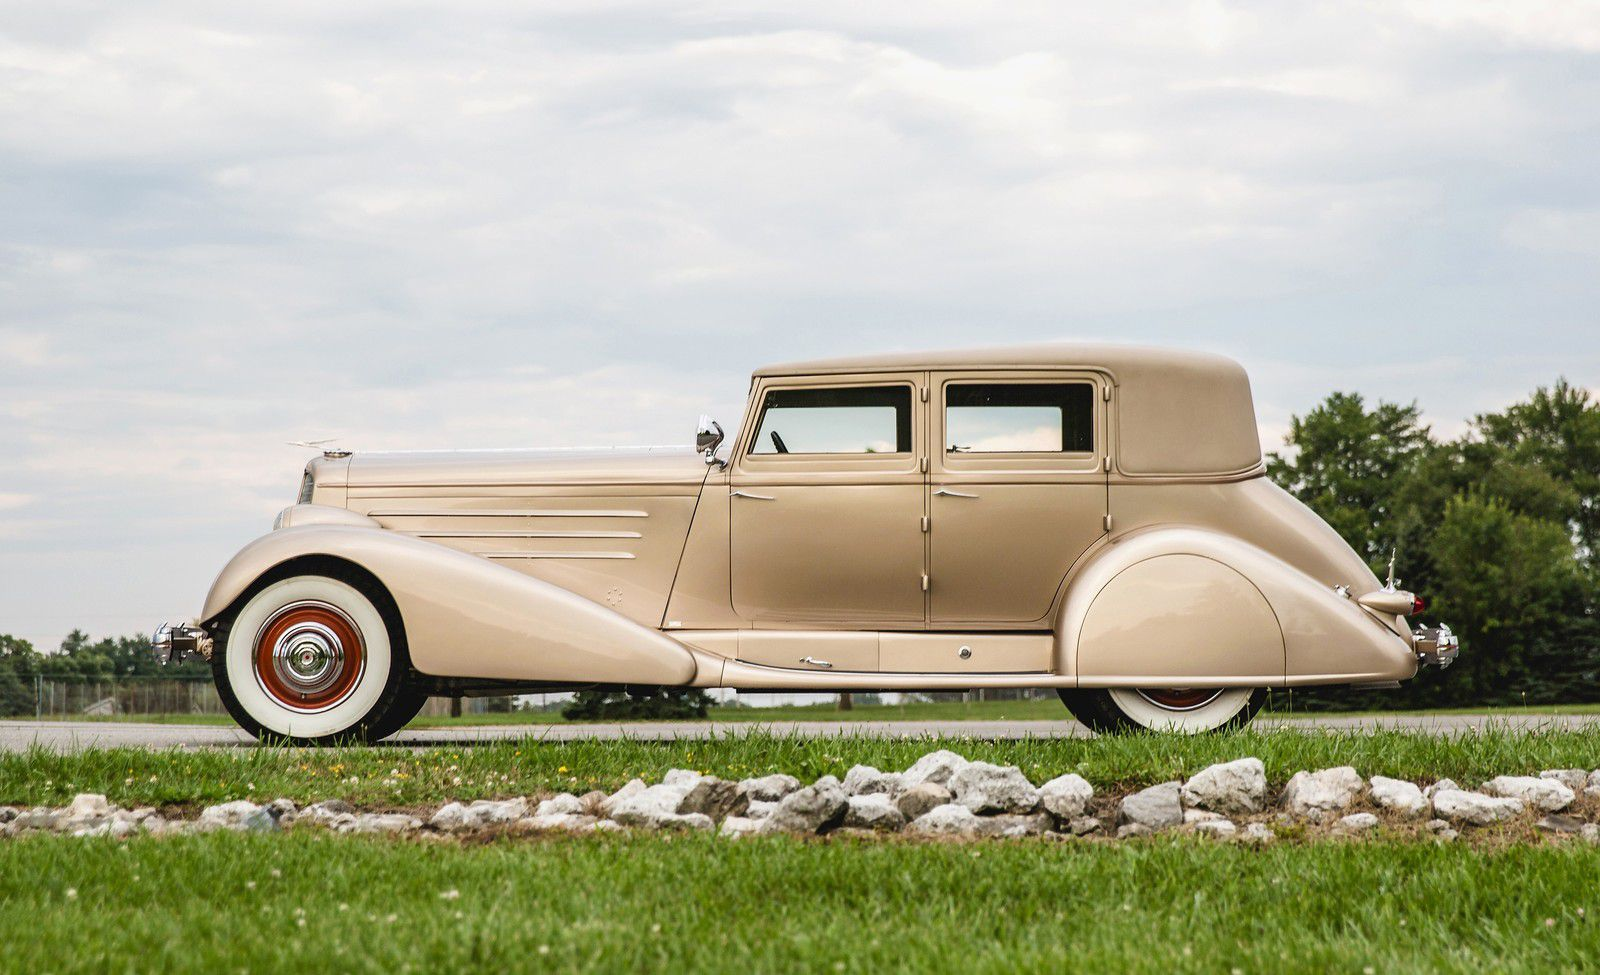 VOITURES DE LEGENDE (1123) : DUESENBERG  MODEL J SEDAN SWB BY BOHMAN & SCHWARTZ - 1929